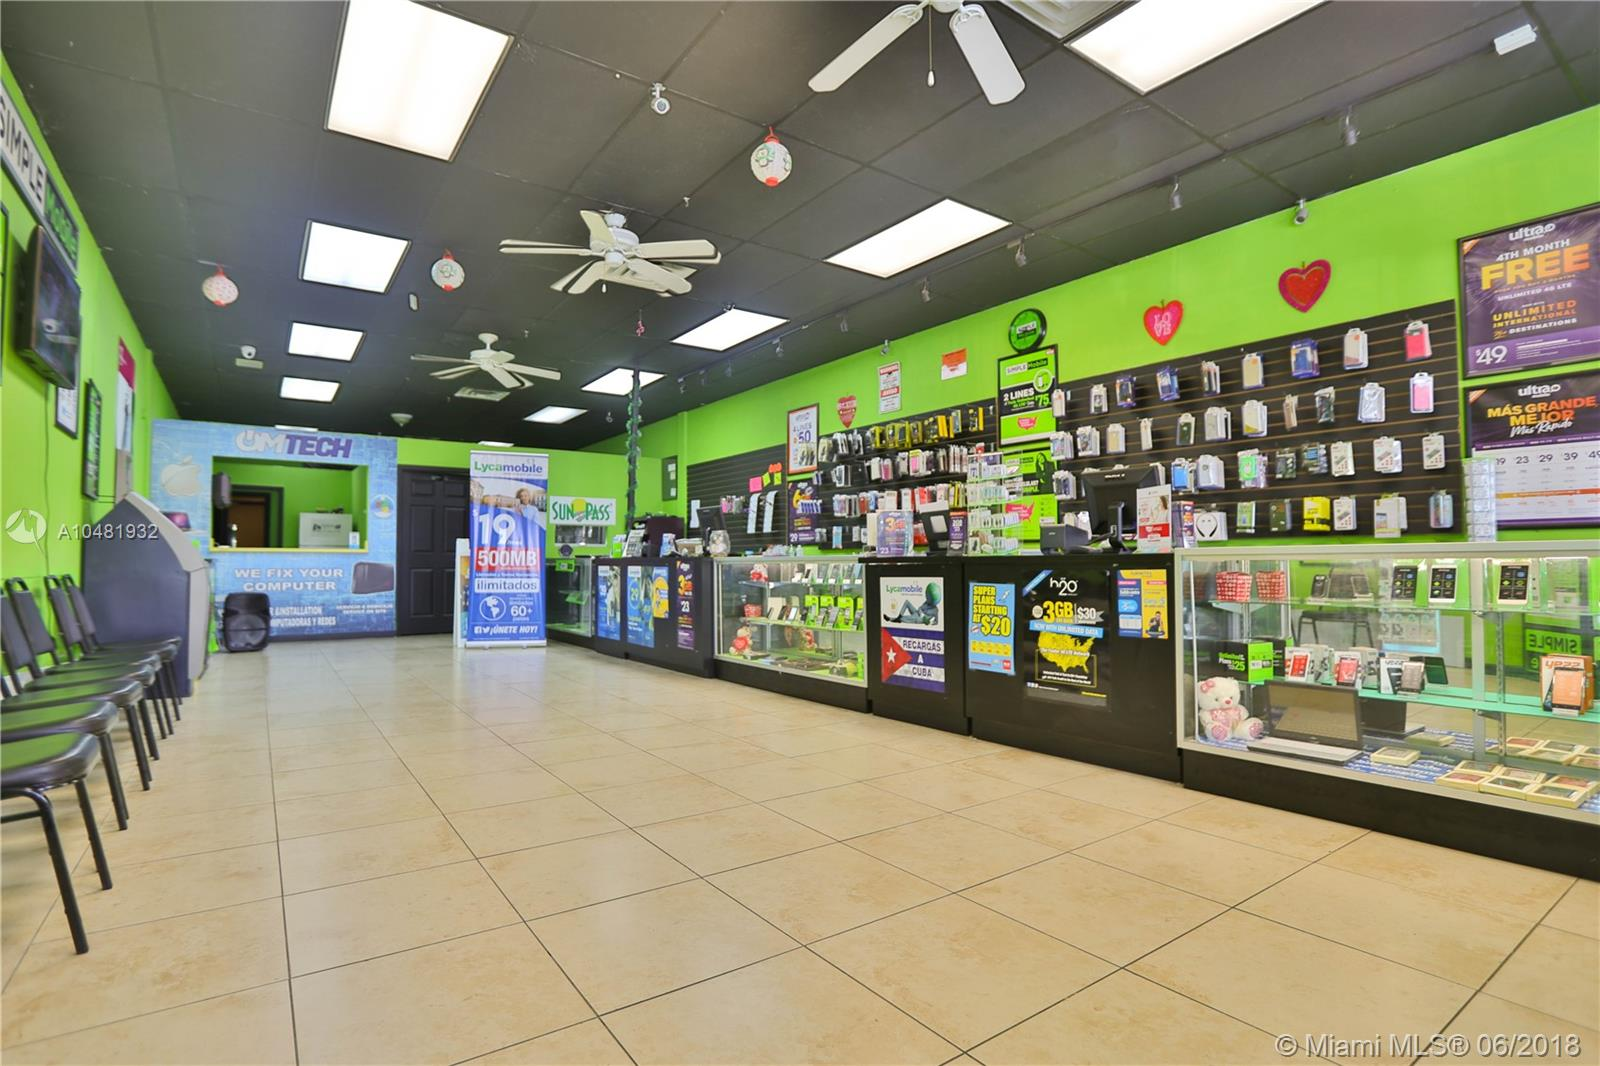 12230 SW 8, Miami, Florida 33184, ,Business Opportunity,For Sale,12230 SW 8,A10481932